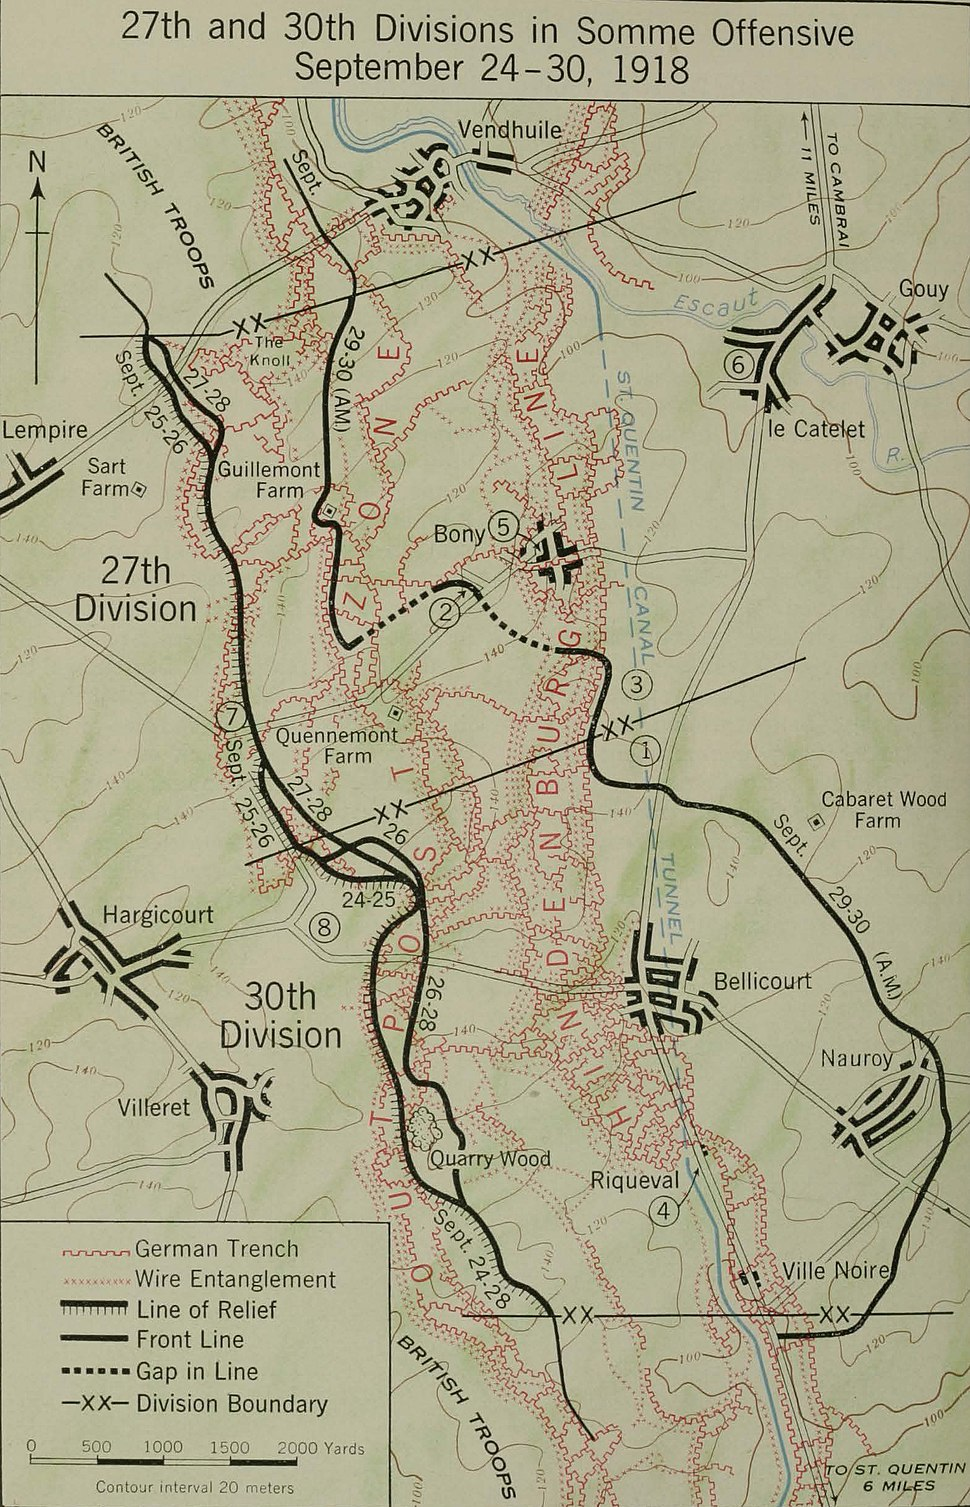 U.S. II Corps in the Battle of St Quentin Canal 29 September 1918